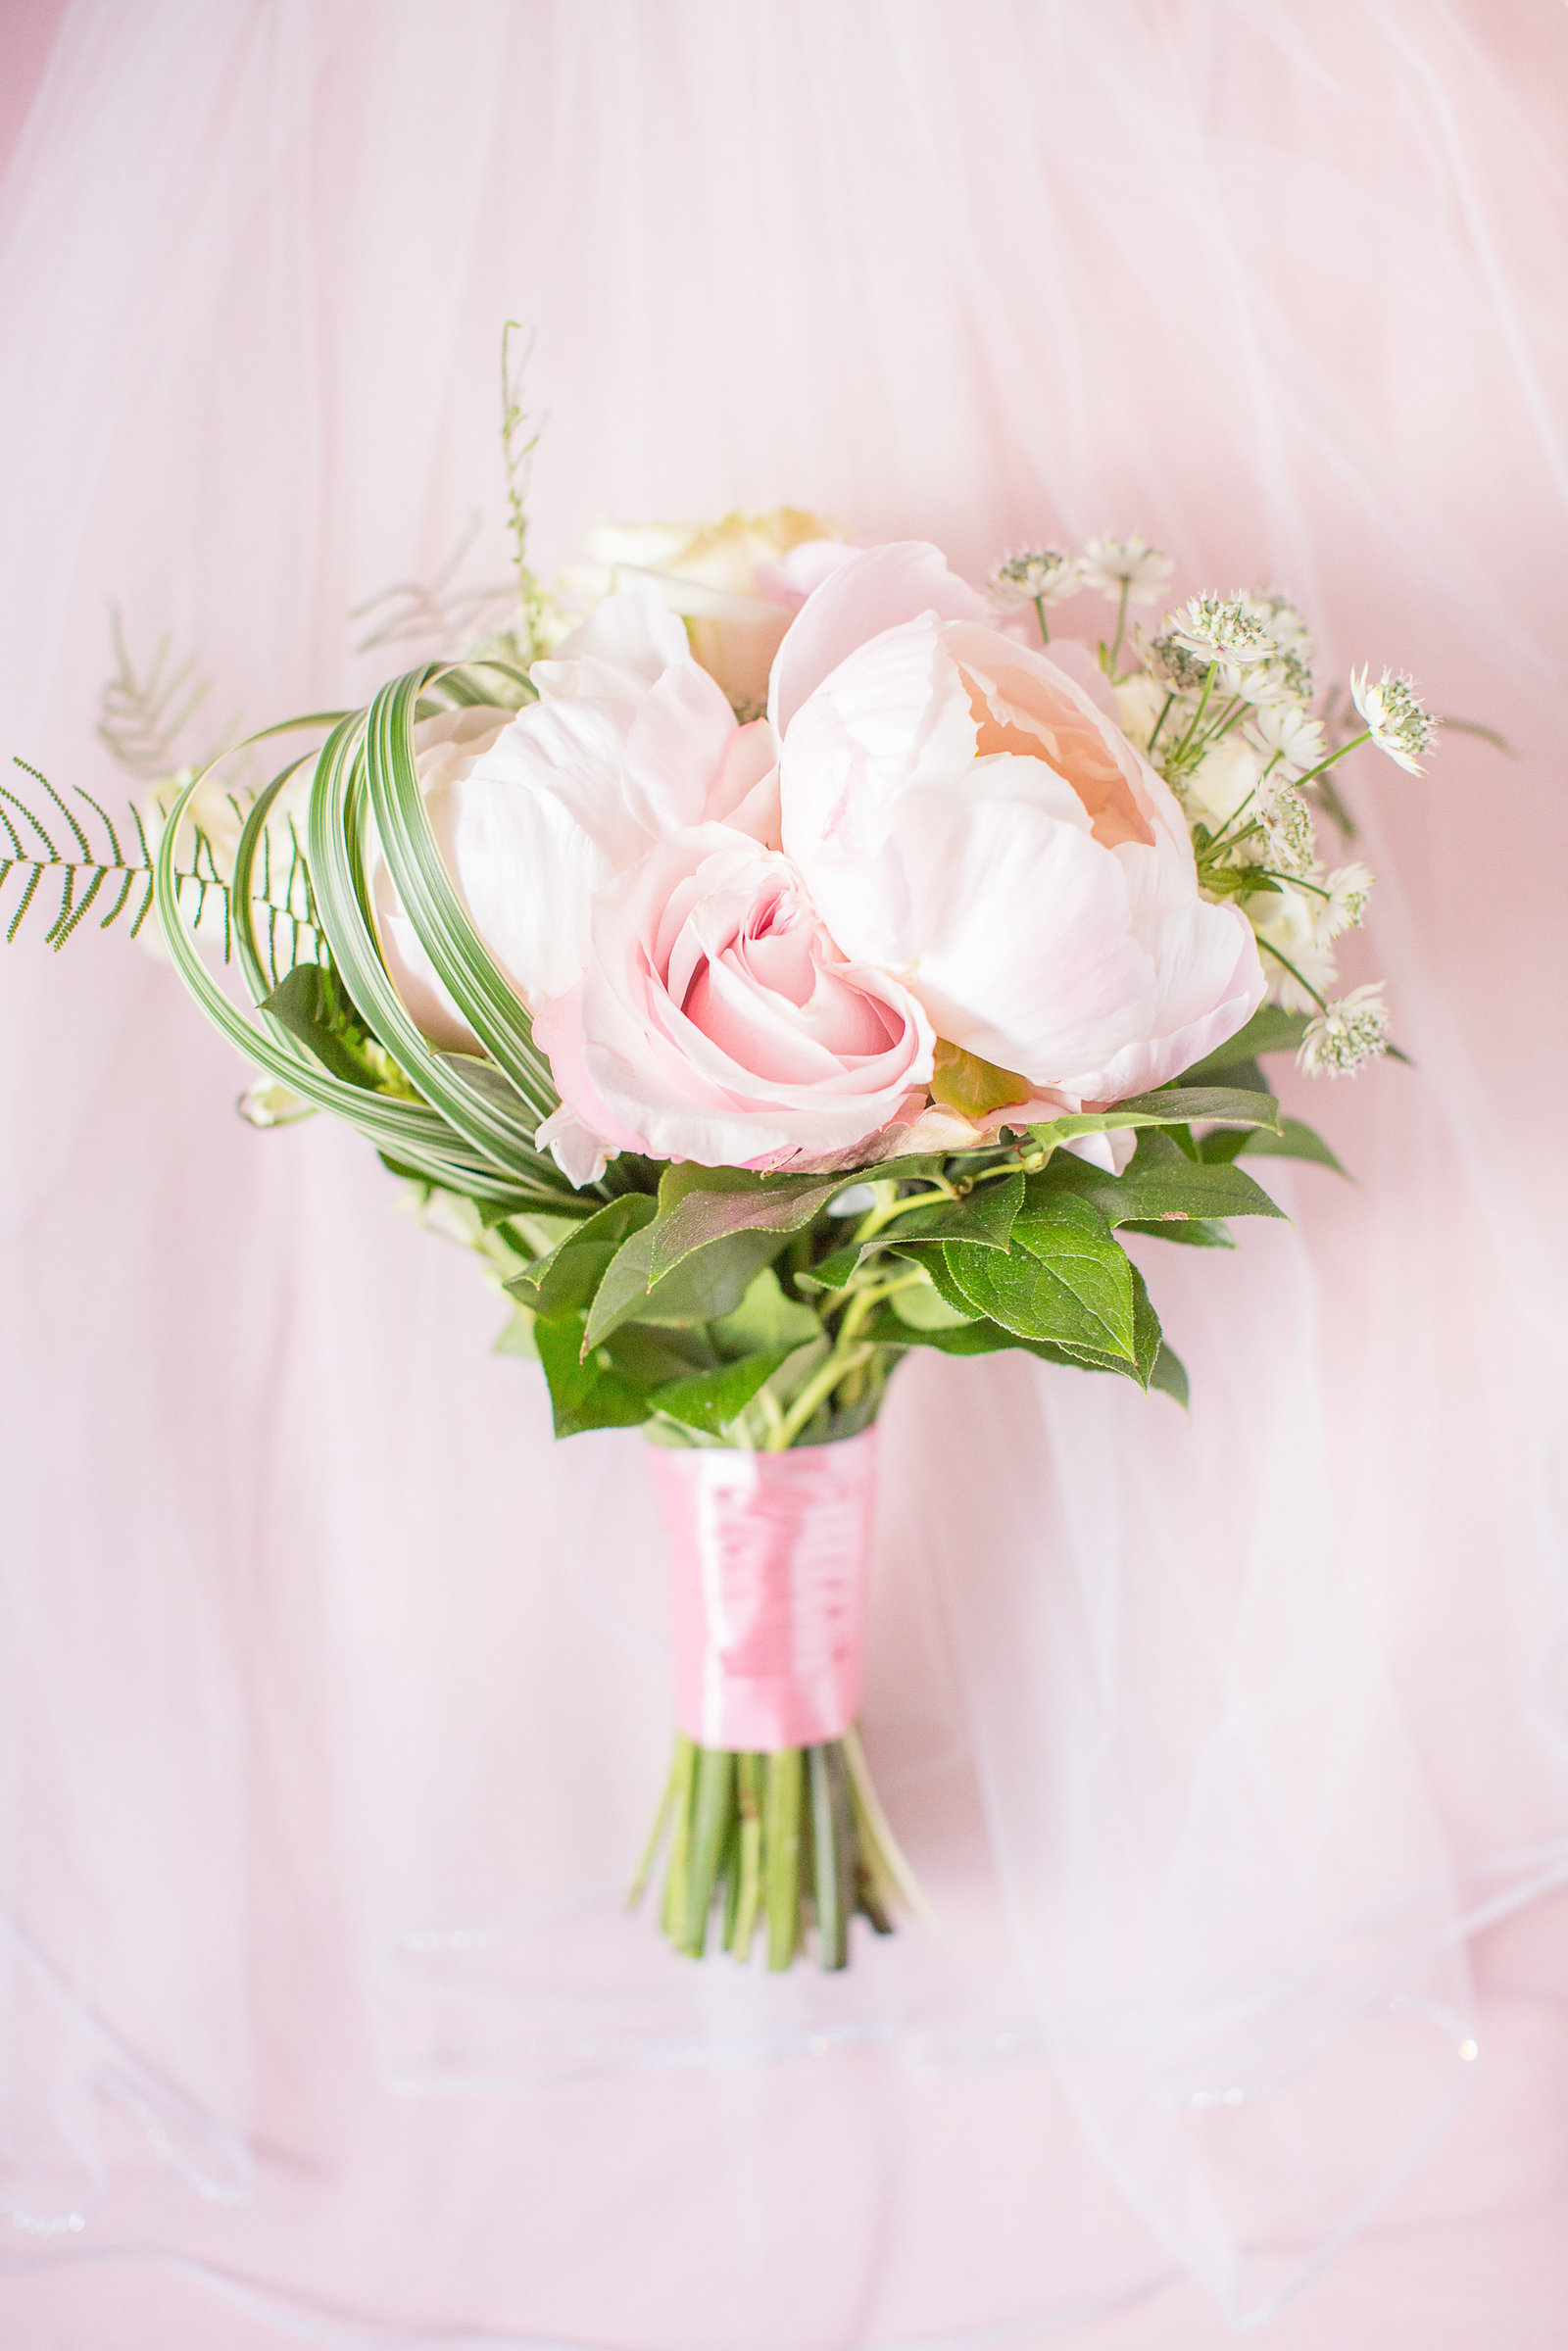 Romantic bouquet with pink florals